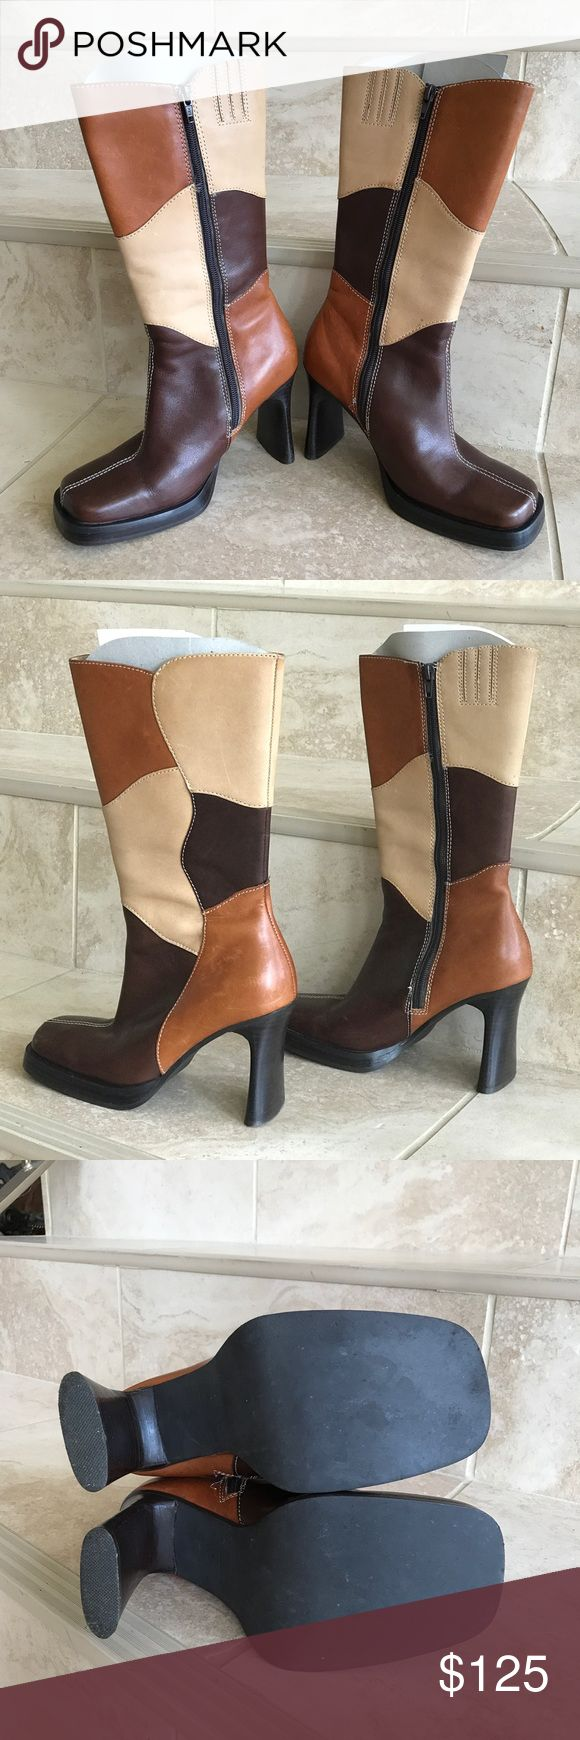 Women's SEYCHELLES boots Gorgeous, great quality, very good condition Seychelles Shoes Winter & Rain Boots